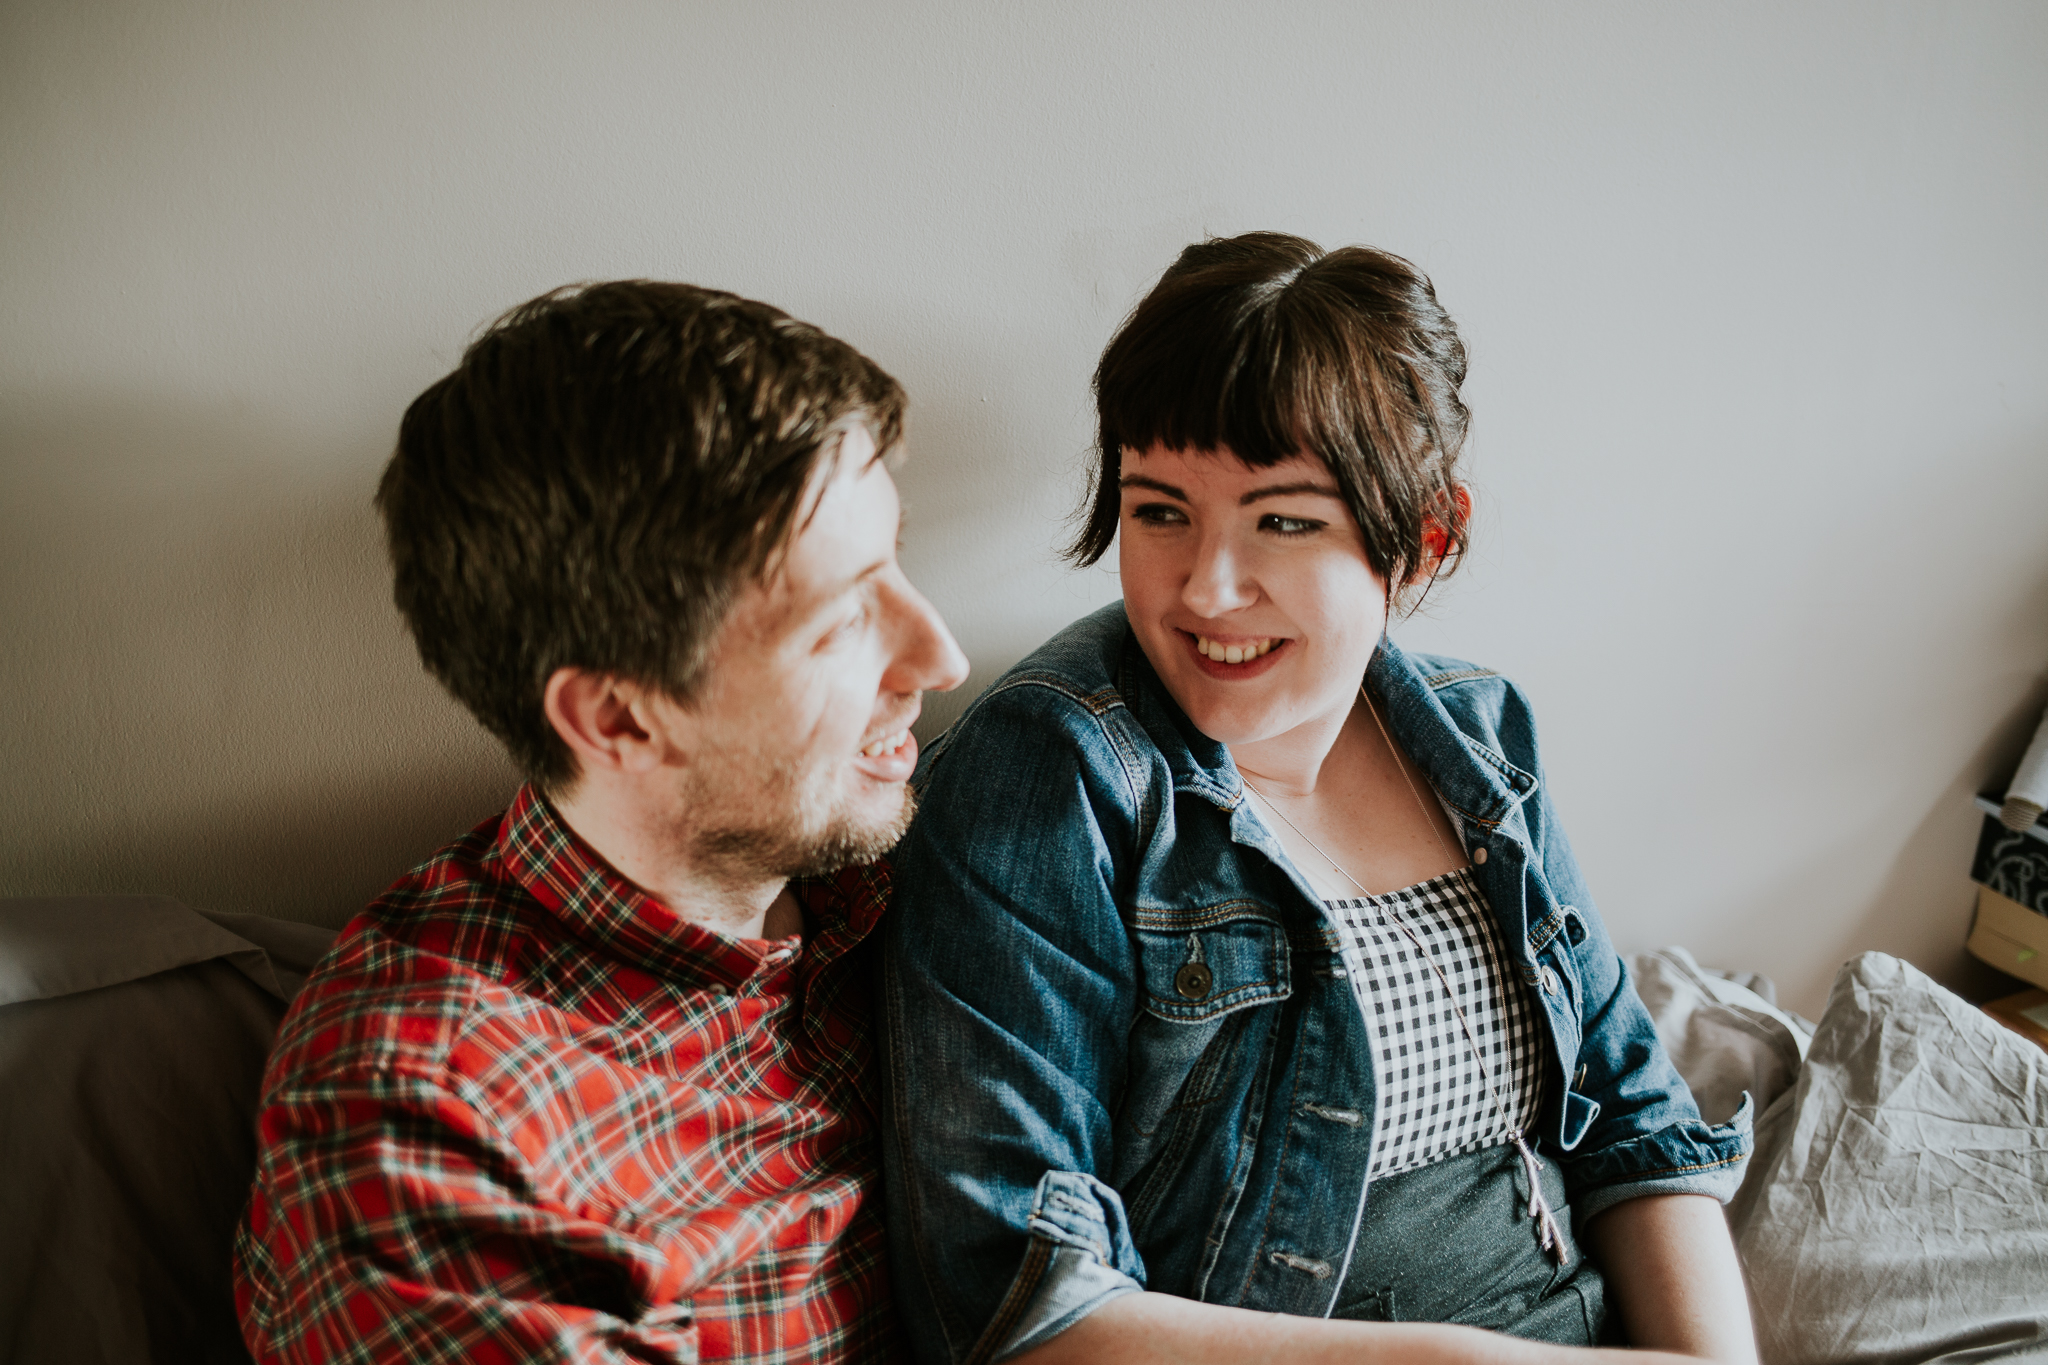 Glasgow wedding and engagement photographer   In the Name of Love Photography